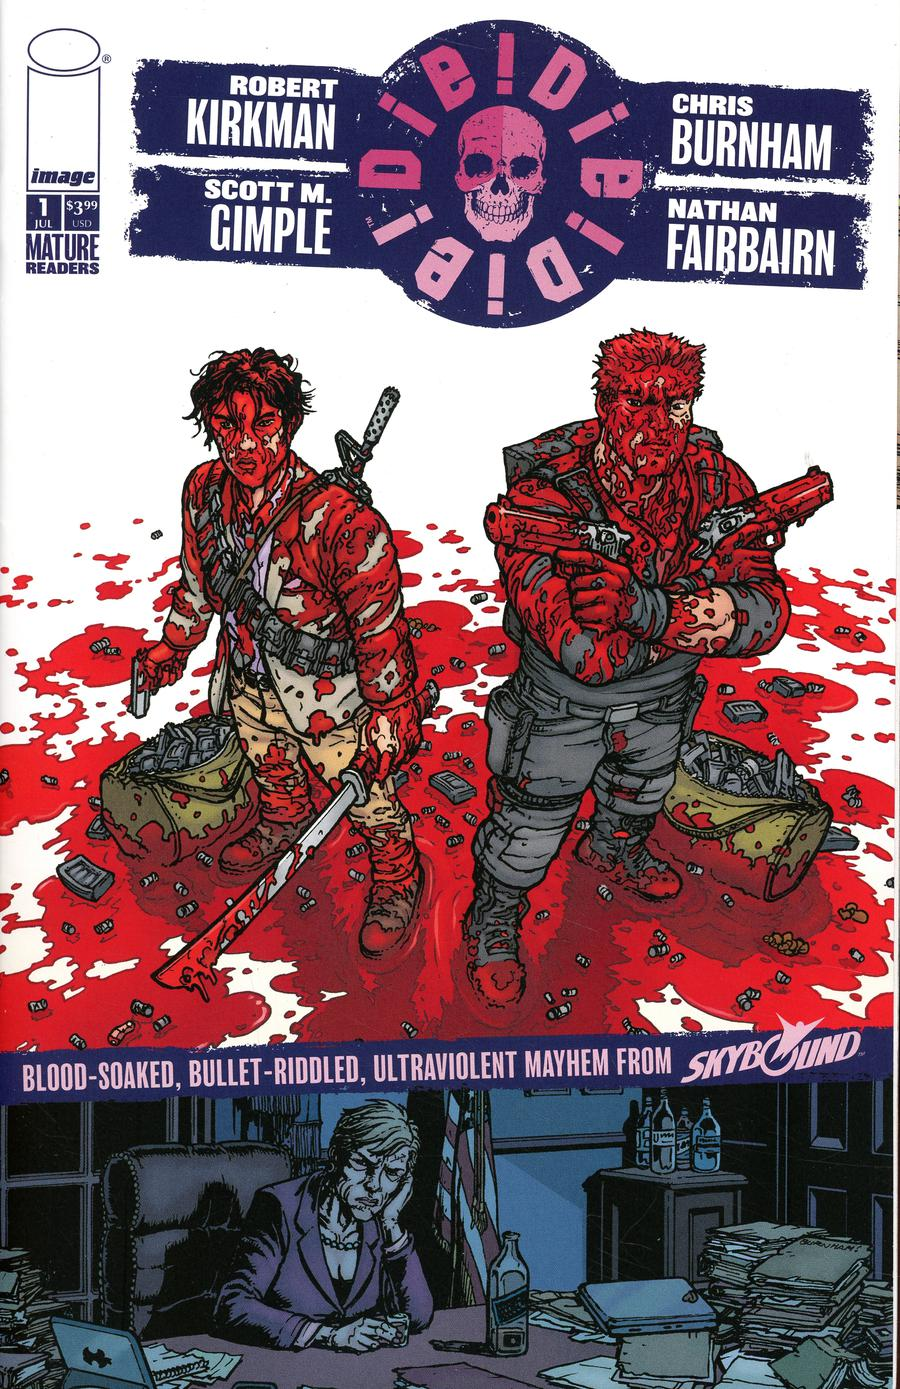 Die Die Die #1 Cover A Chris Burnham & Nathan Fairbairn No Dialogue Cover